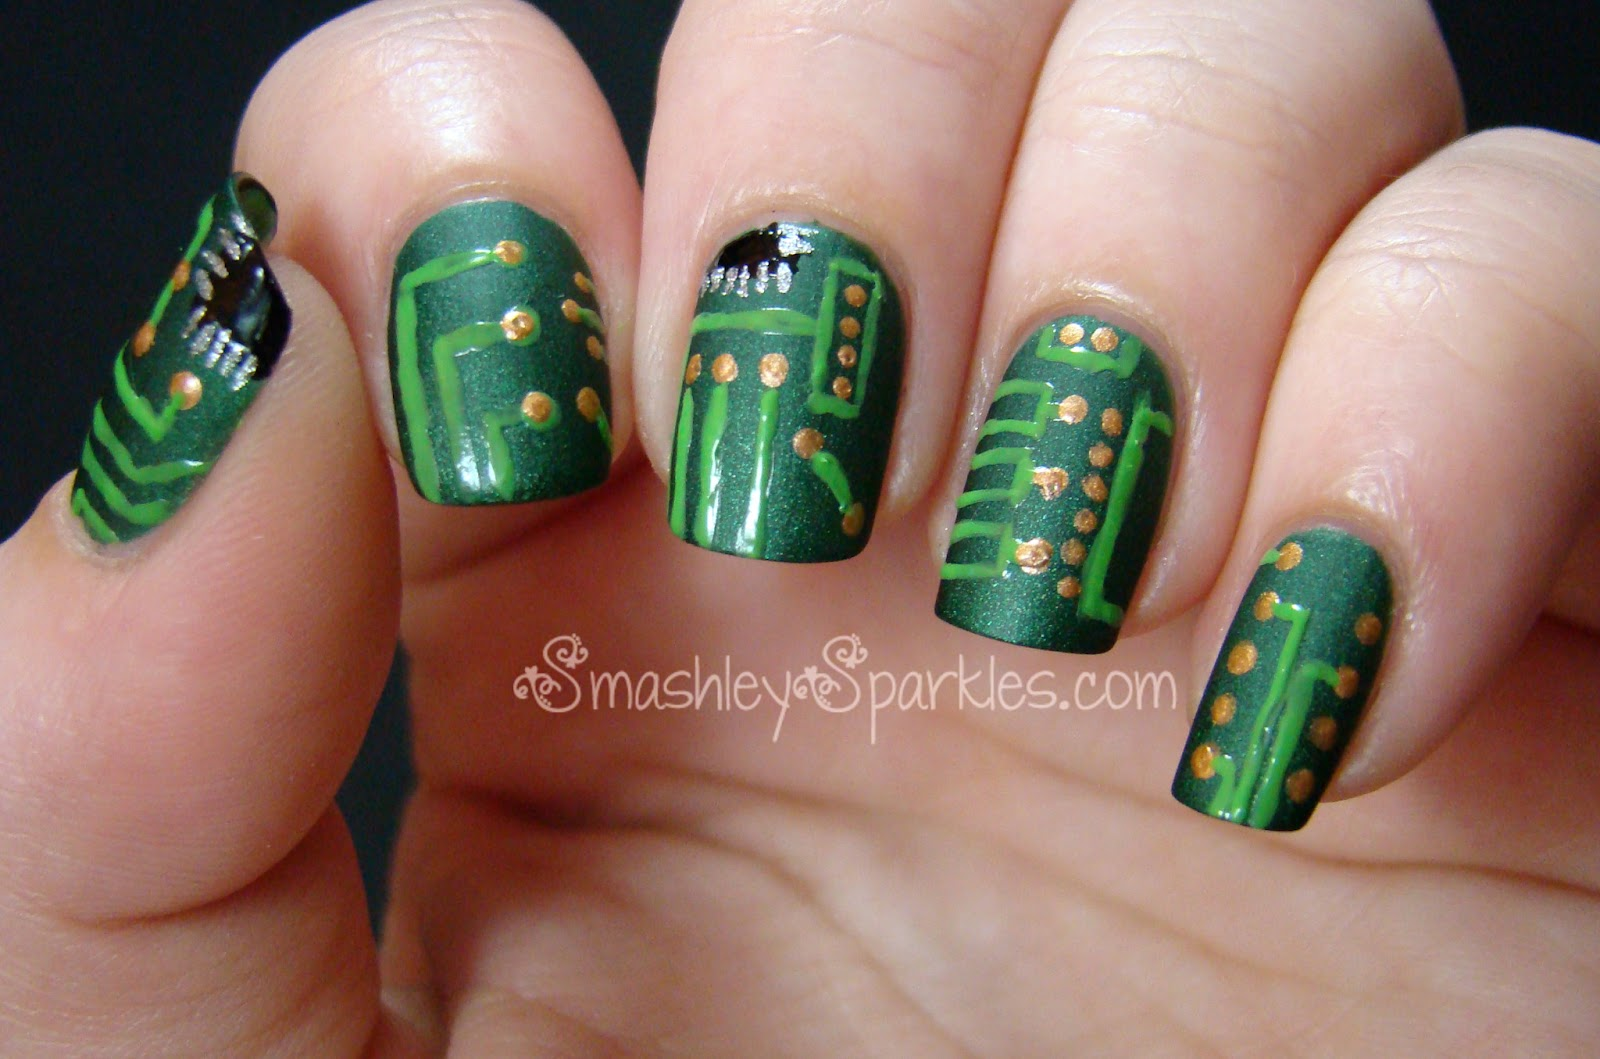 Nail Art Ideas » Moon Phase Nail Art - Pictures of Nail Art Design Ideas